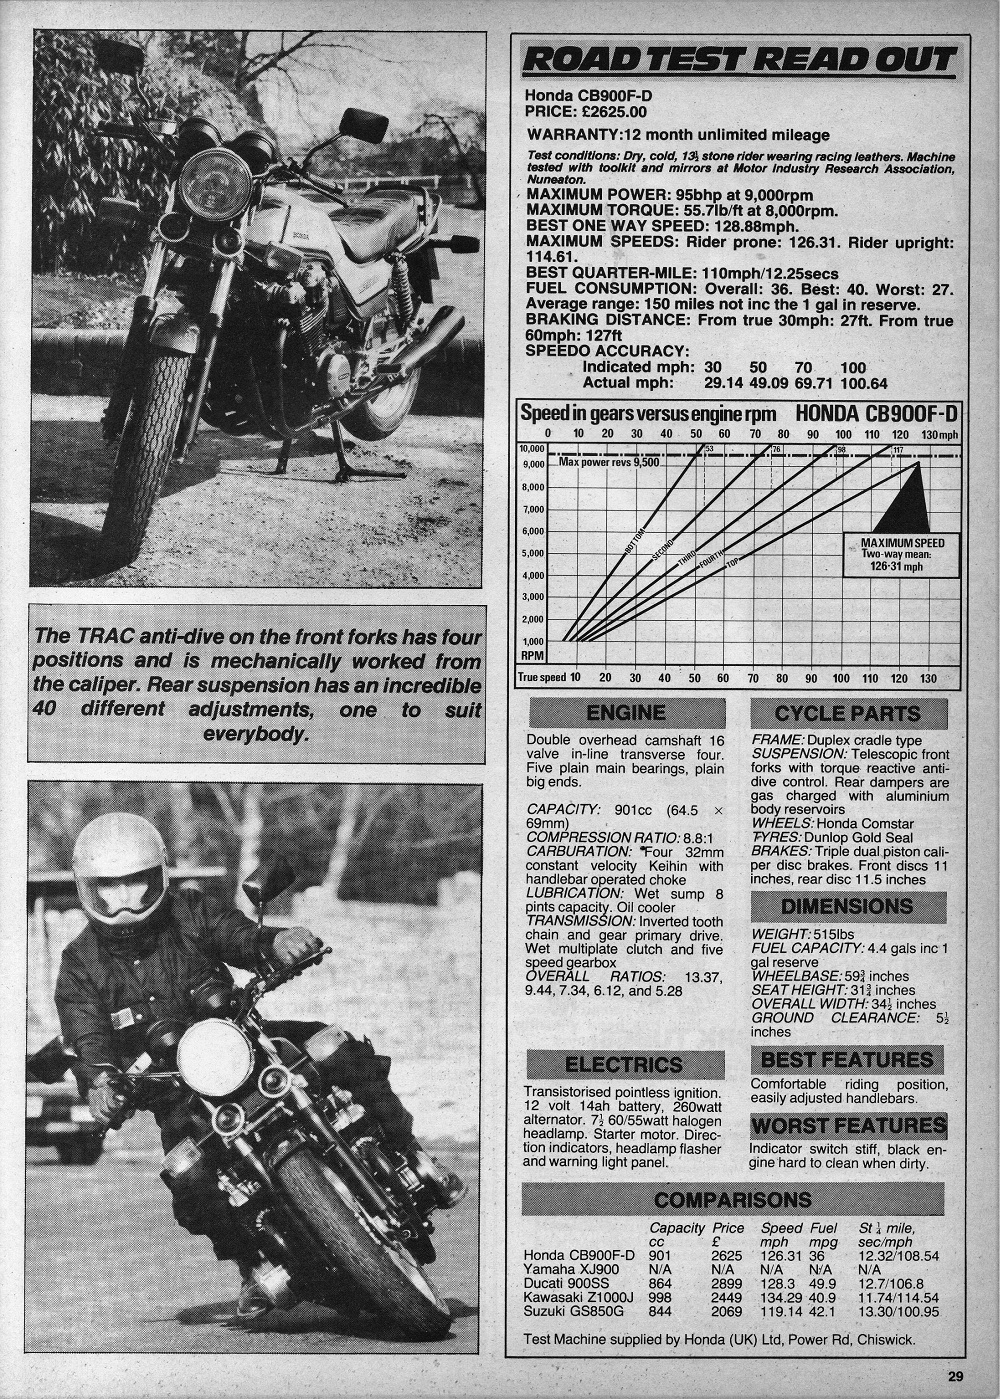 1983 Honda CB900F-D road test.4.jpg